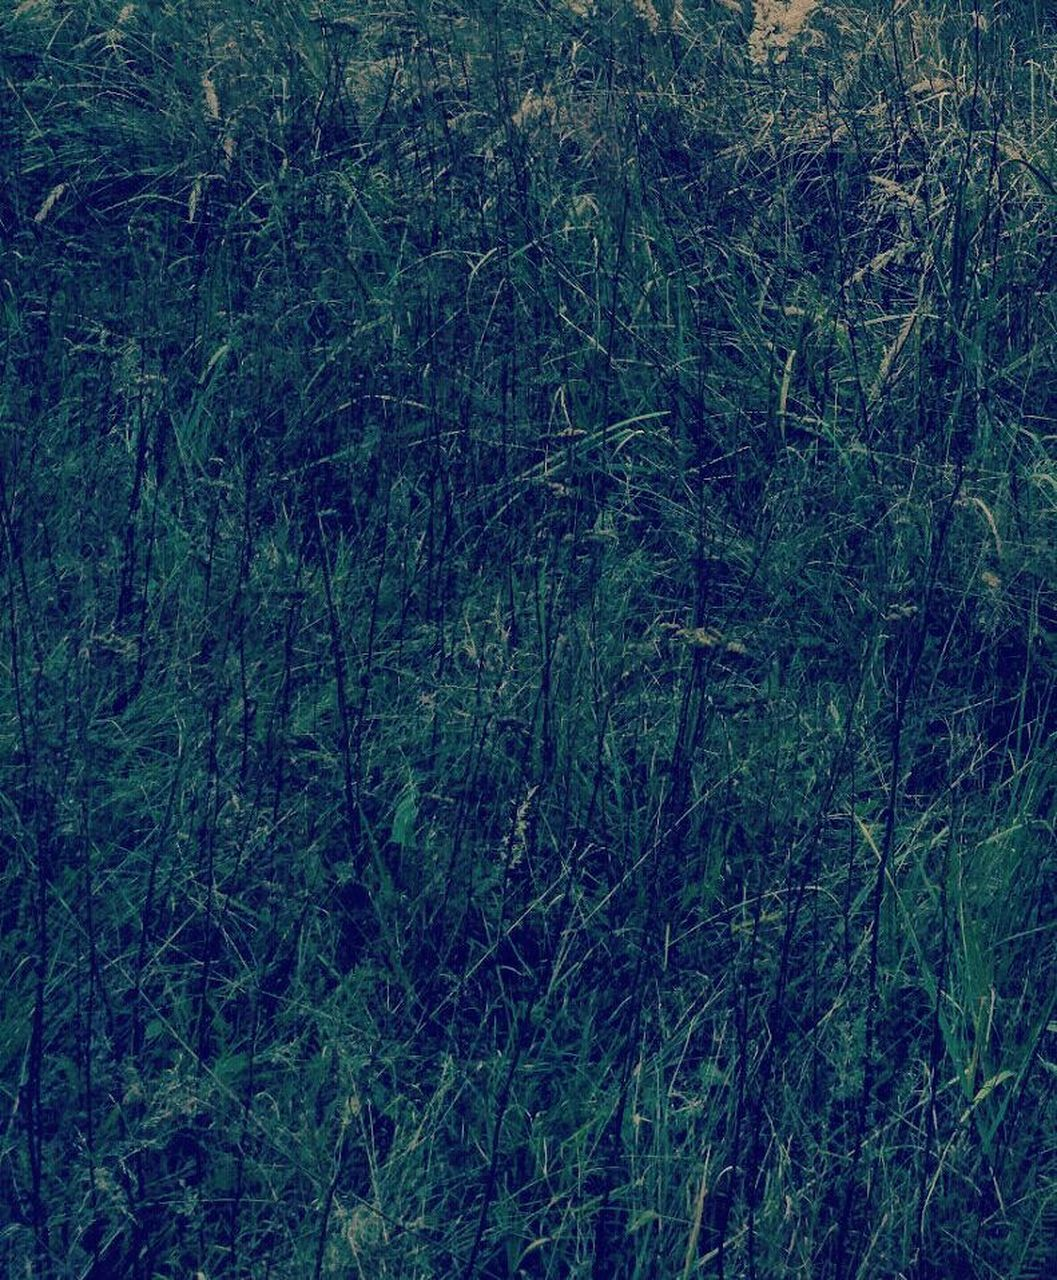 nature, forest, no people, growth, tranquility, plant, day, backgrounds, full frame, beauty in nature, grass, outdoors, tree